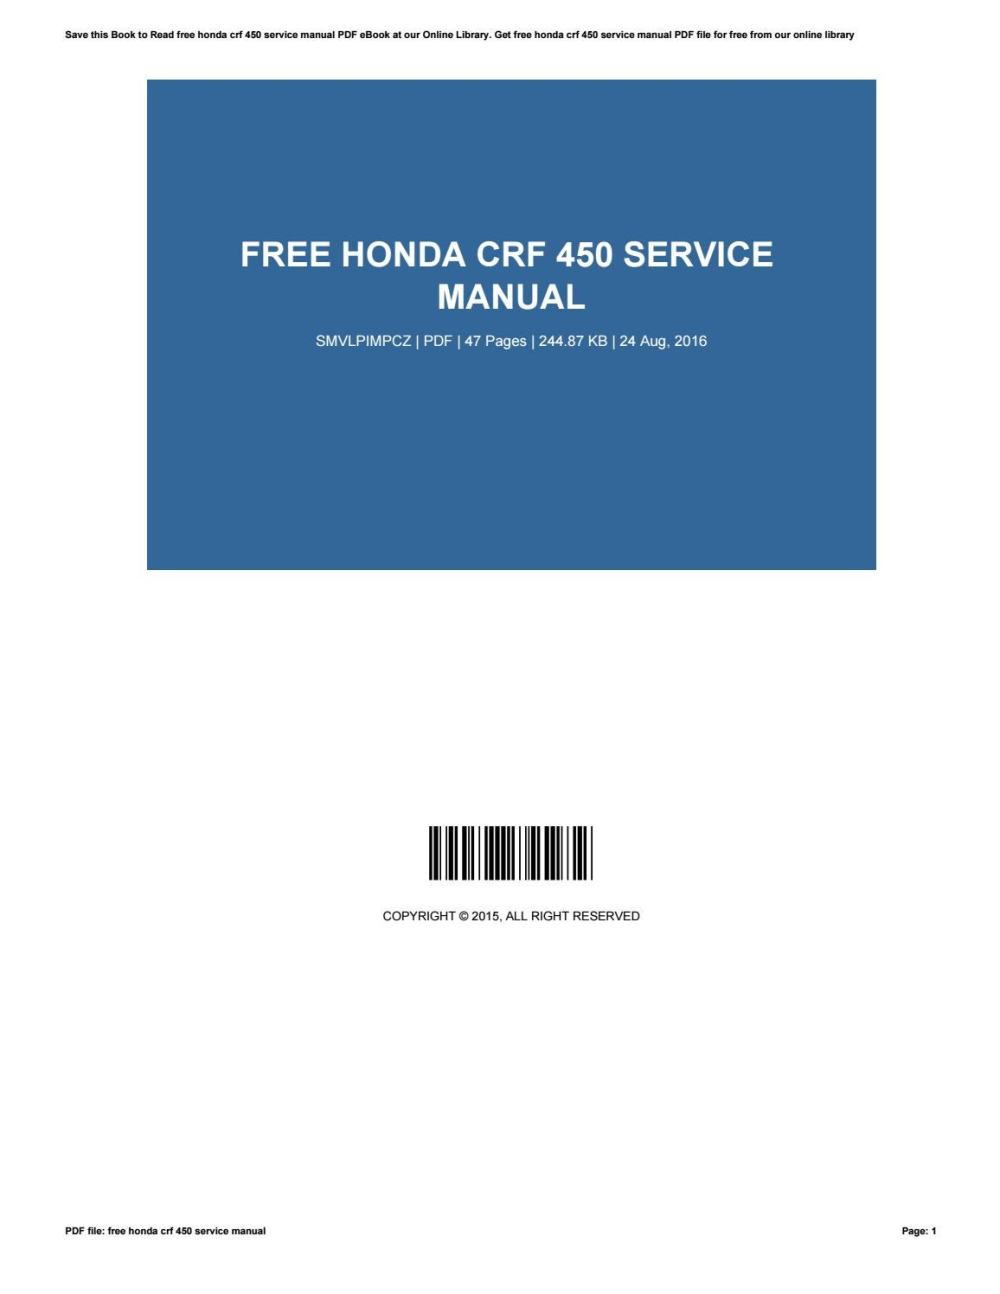 medium resolution of crf 450 service manual download fuse box diagram also 2008 ford f 250 owner39s manual further ford